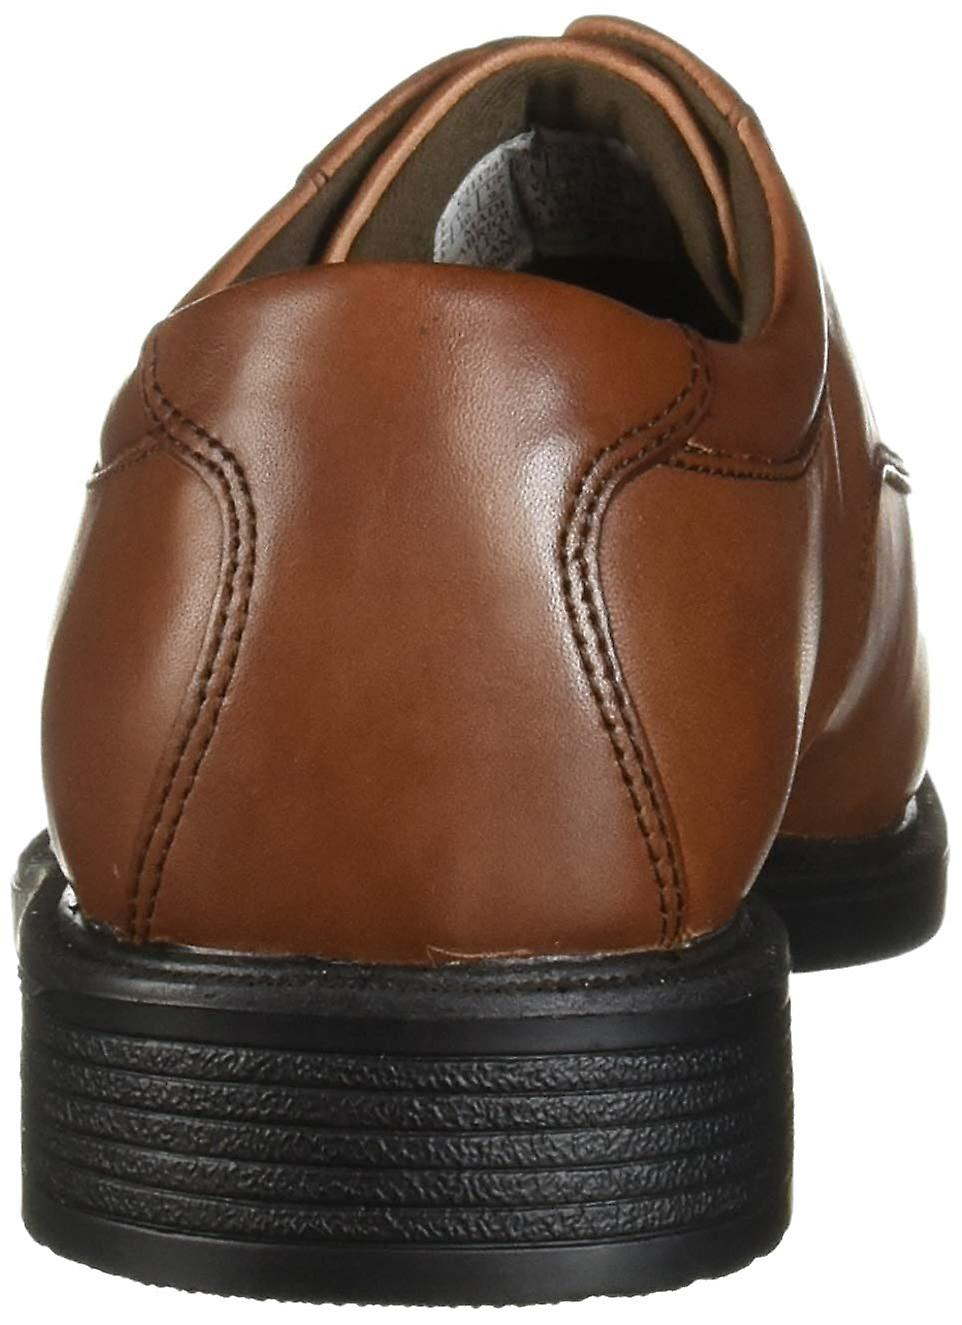 Rockport Men's Shoes Margin Lace Up Dress Oxfords